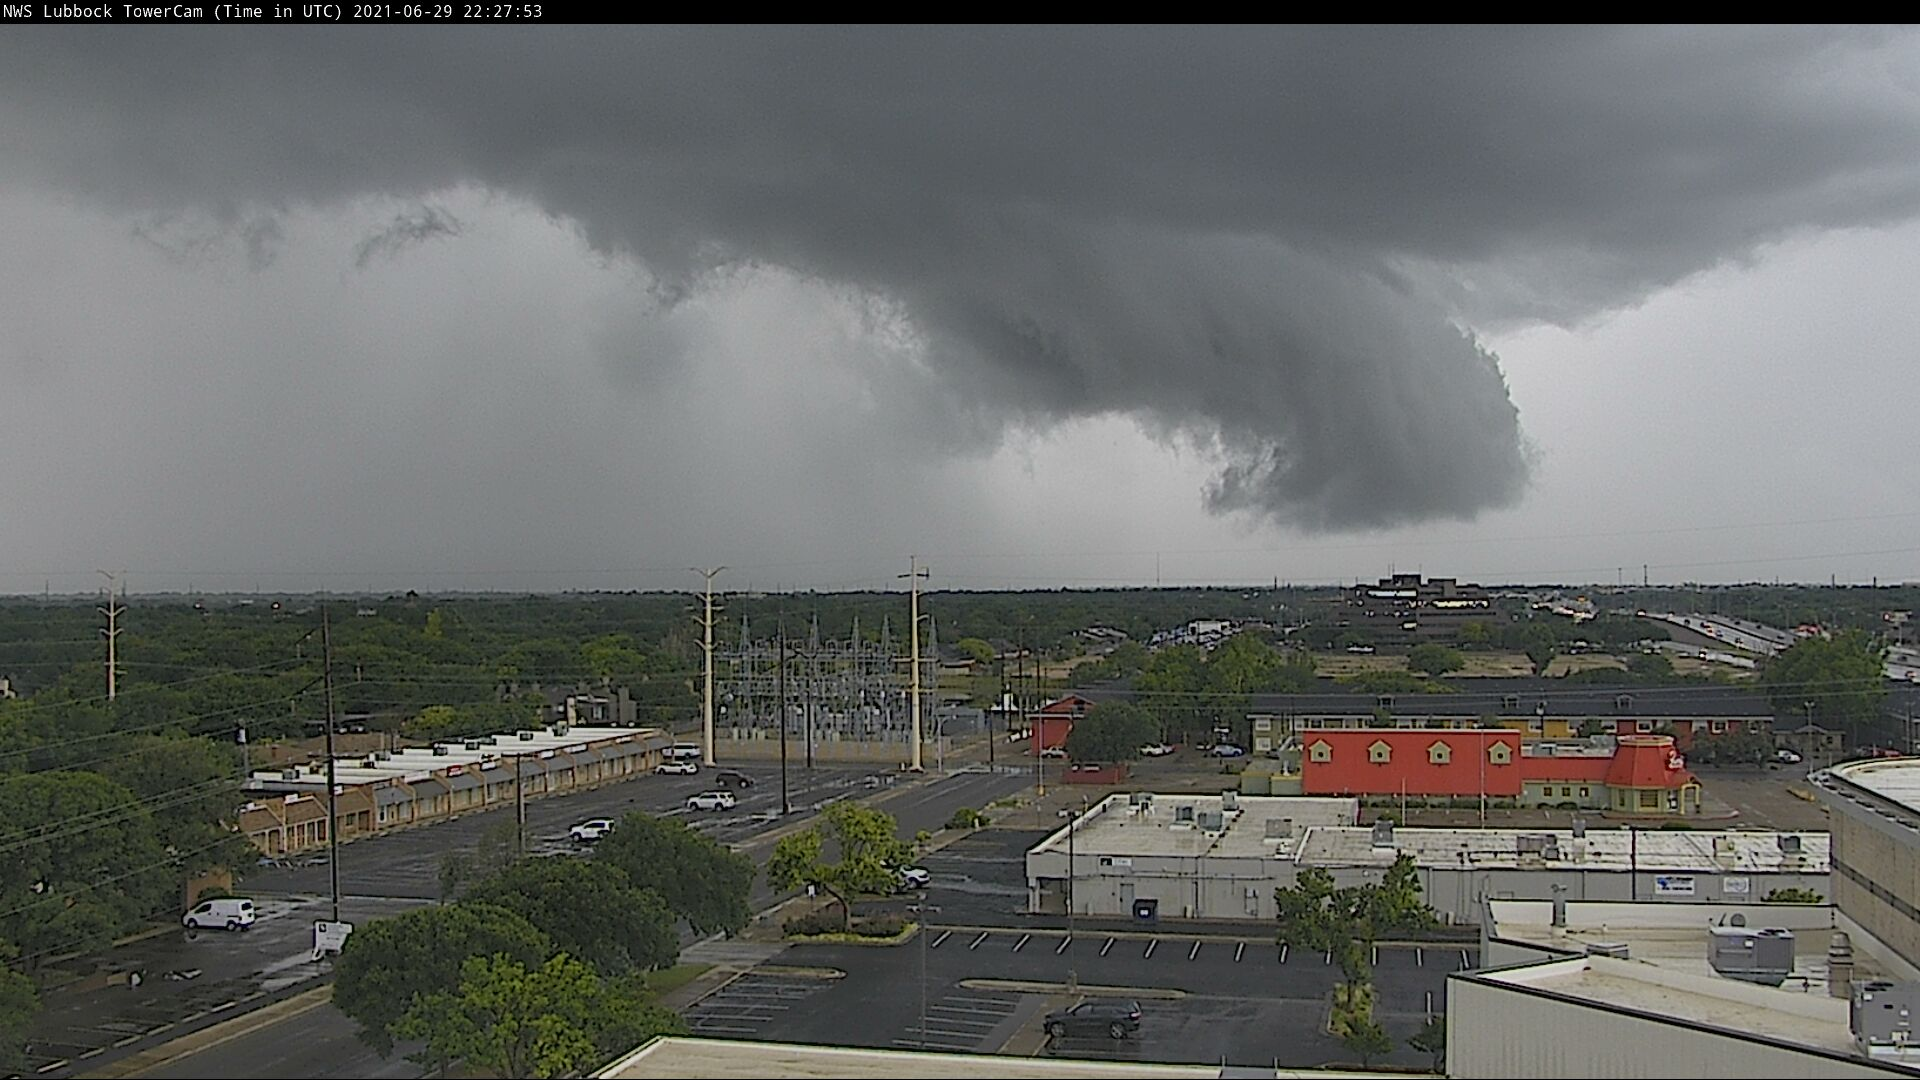 Ominous clouds and torrential rain moving across southwest Lubbock late Tuesday afternoon (29 June 2021).